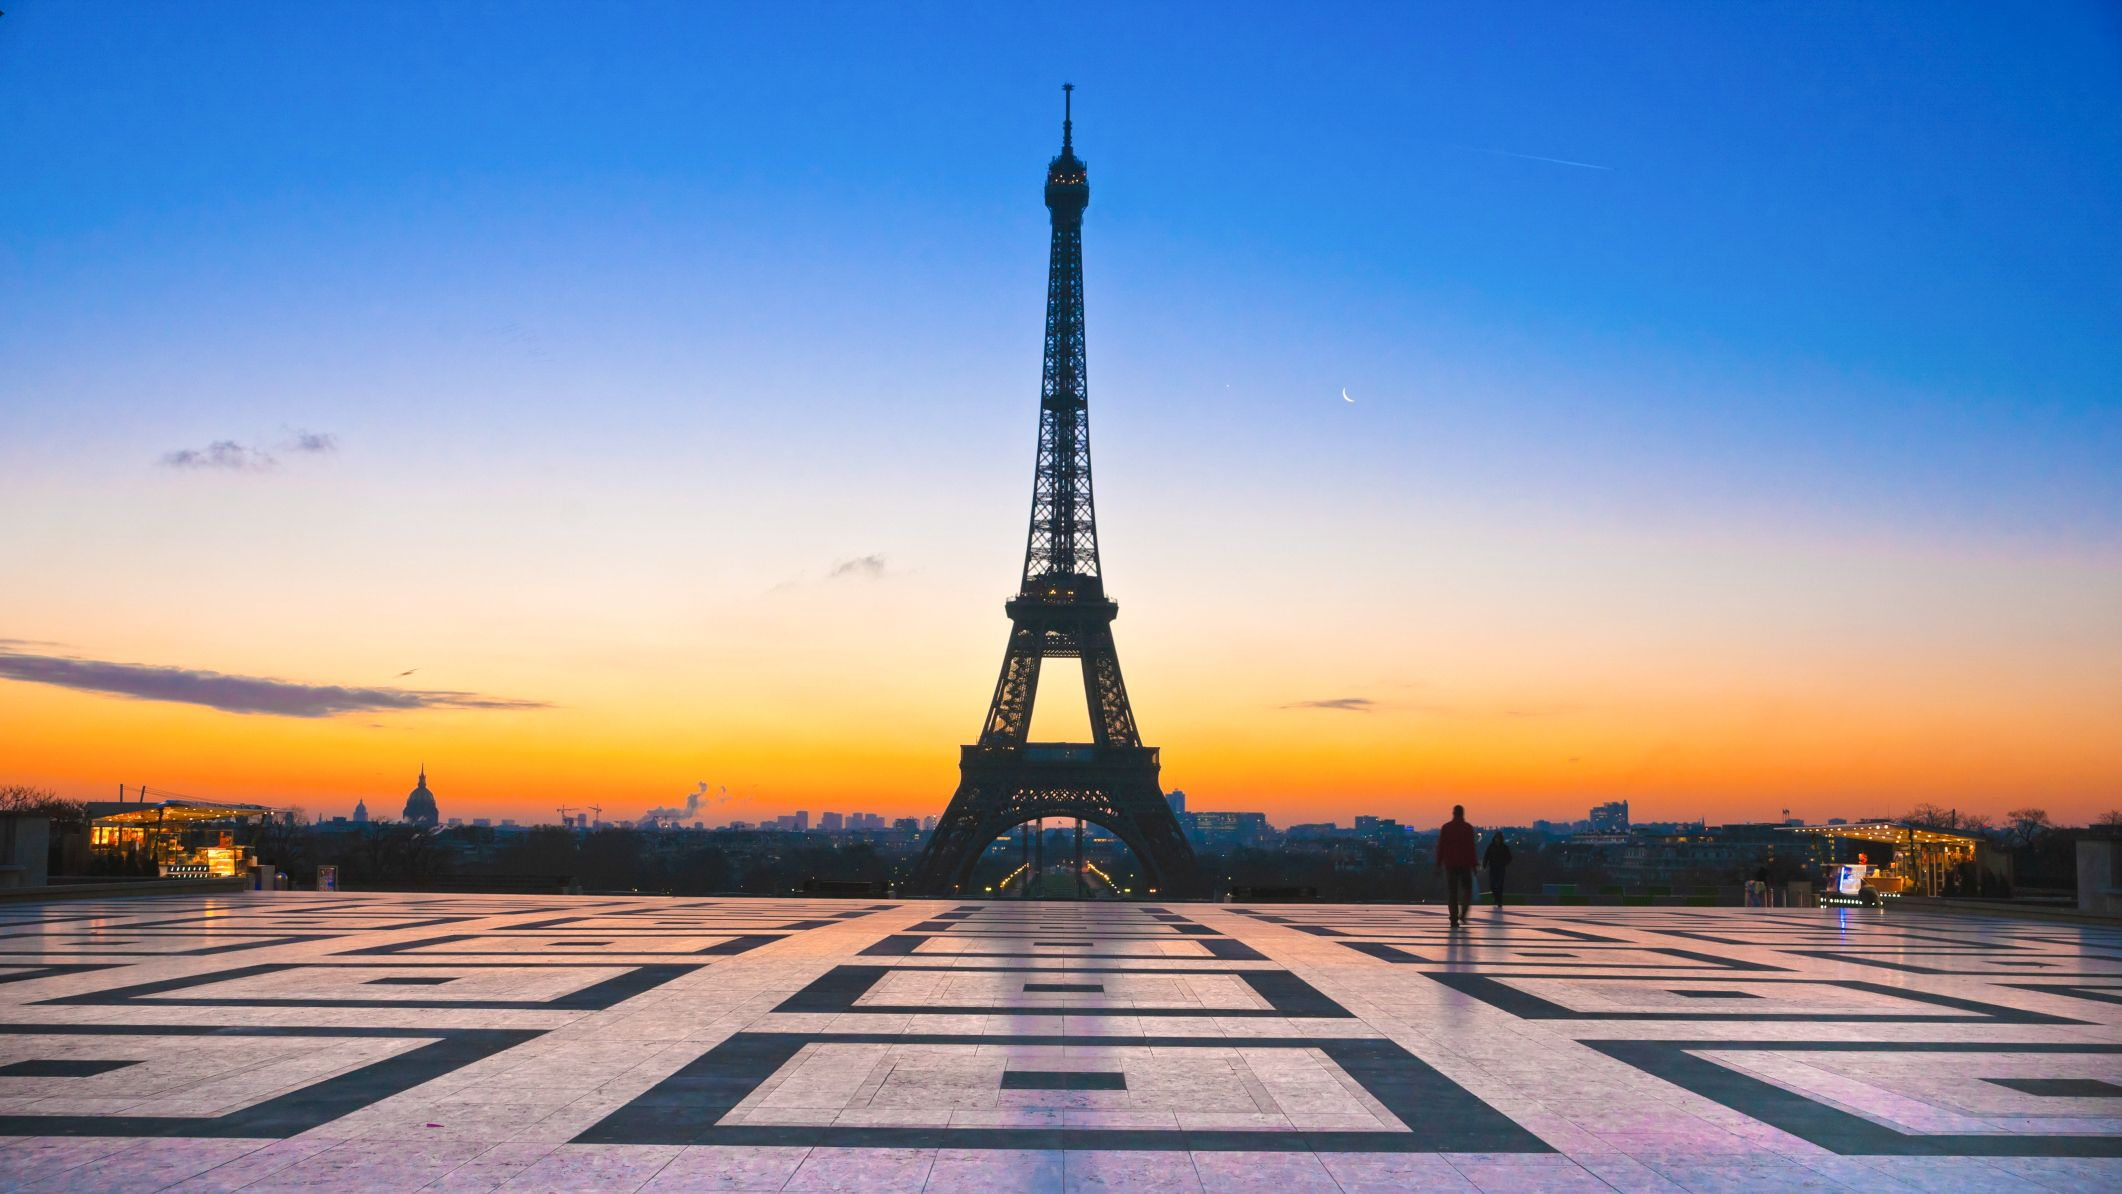 Beautiful view of Eiffel Tower at sunset.